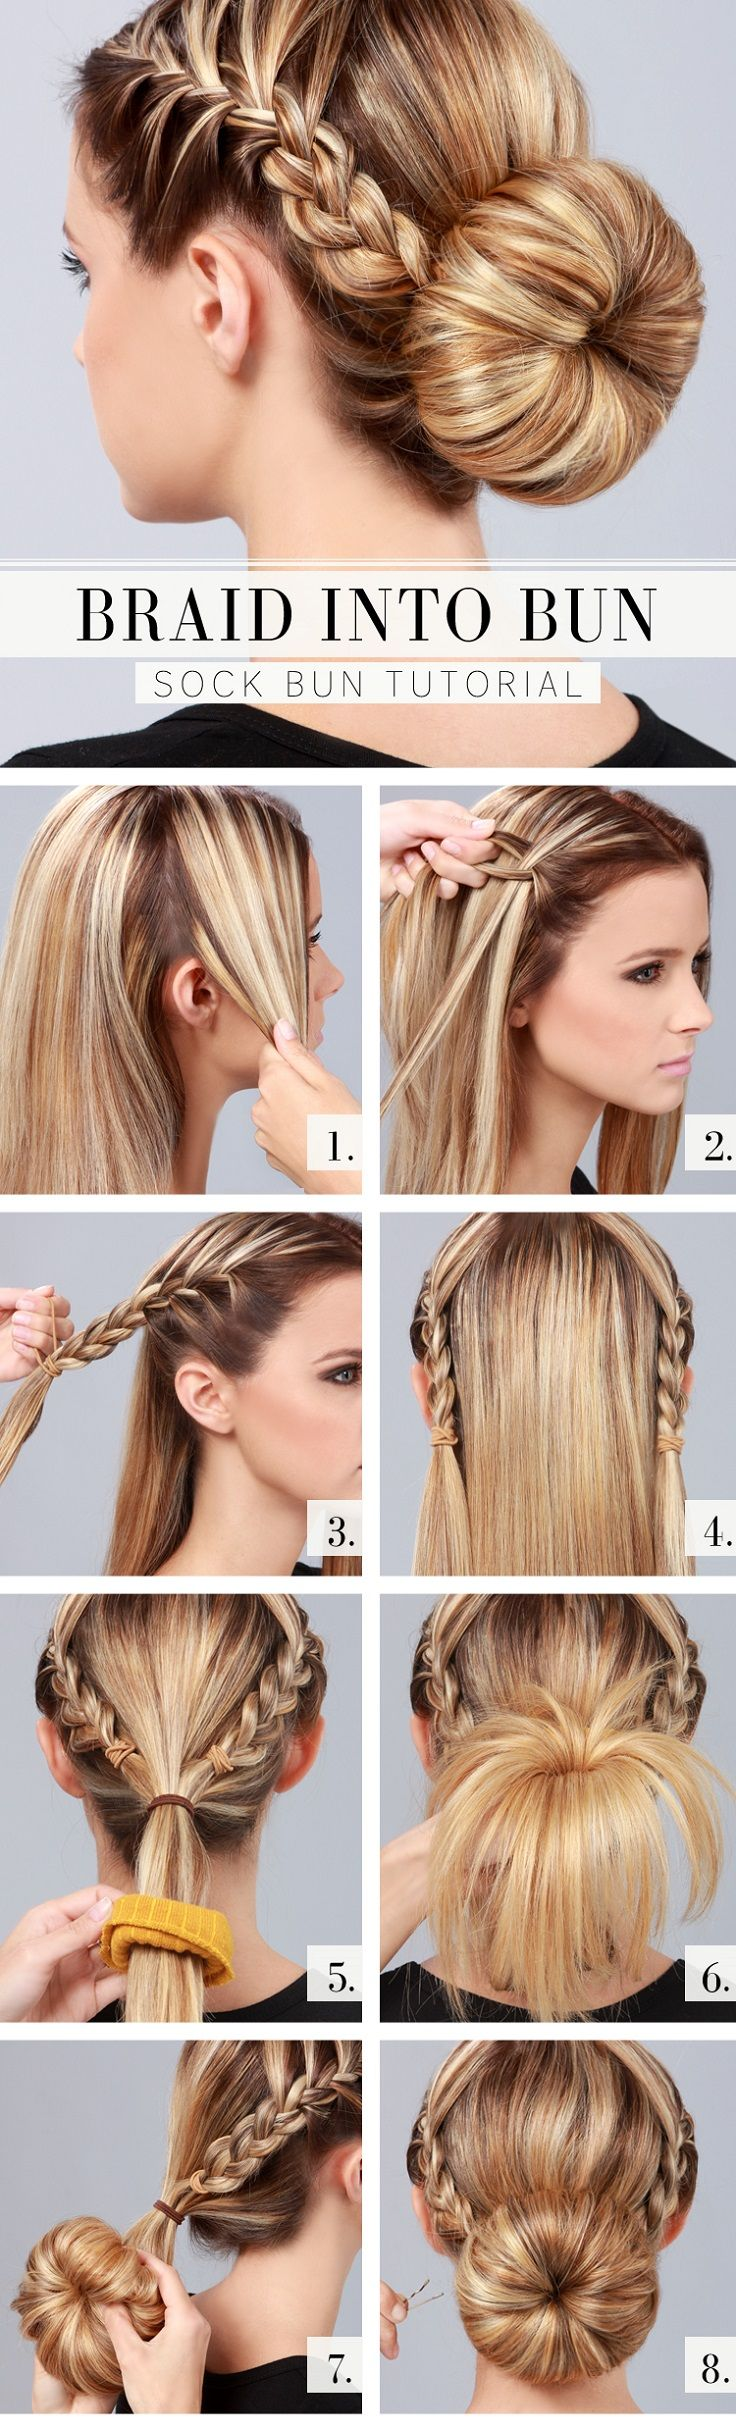 top 10 most popular hair tutorials for spring 2014 | popular hair